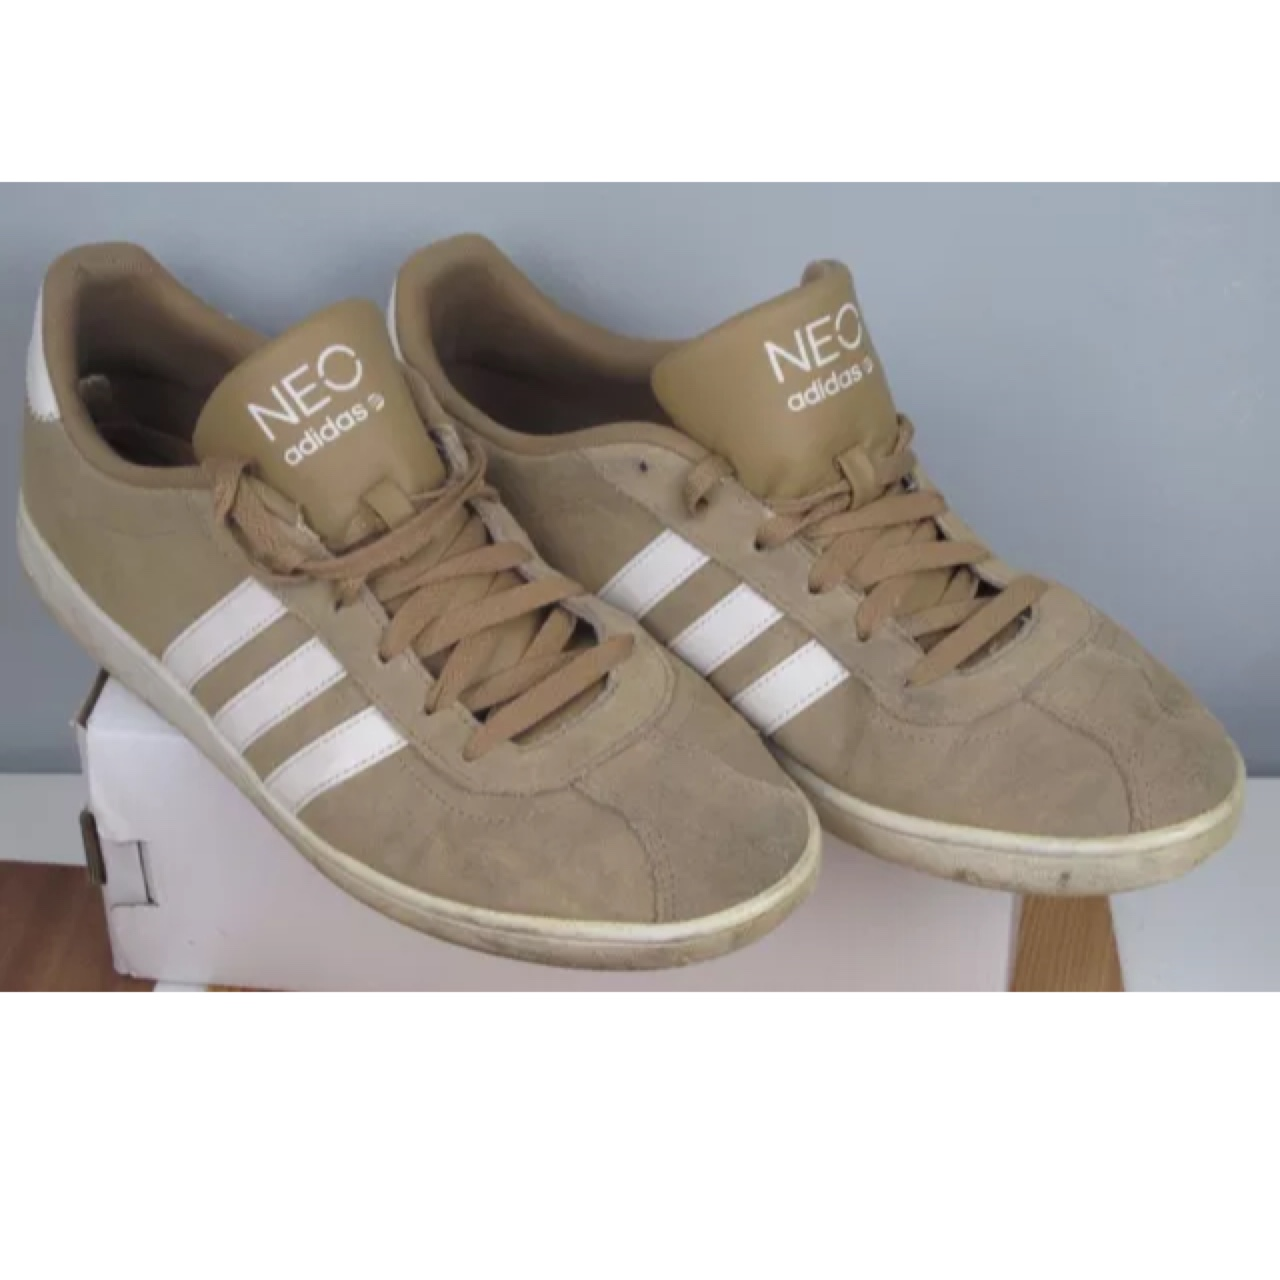 mens adidas neo label trainers size UK 10 US 10.5...